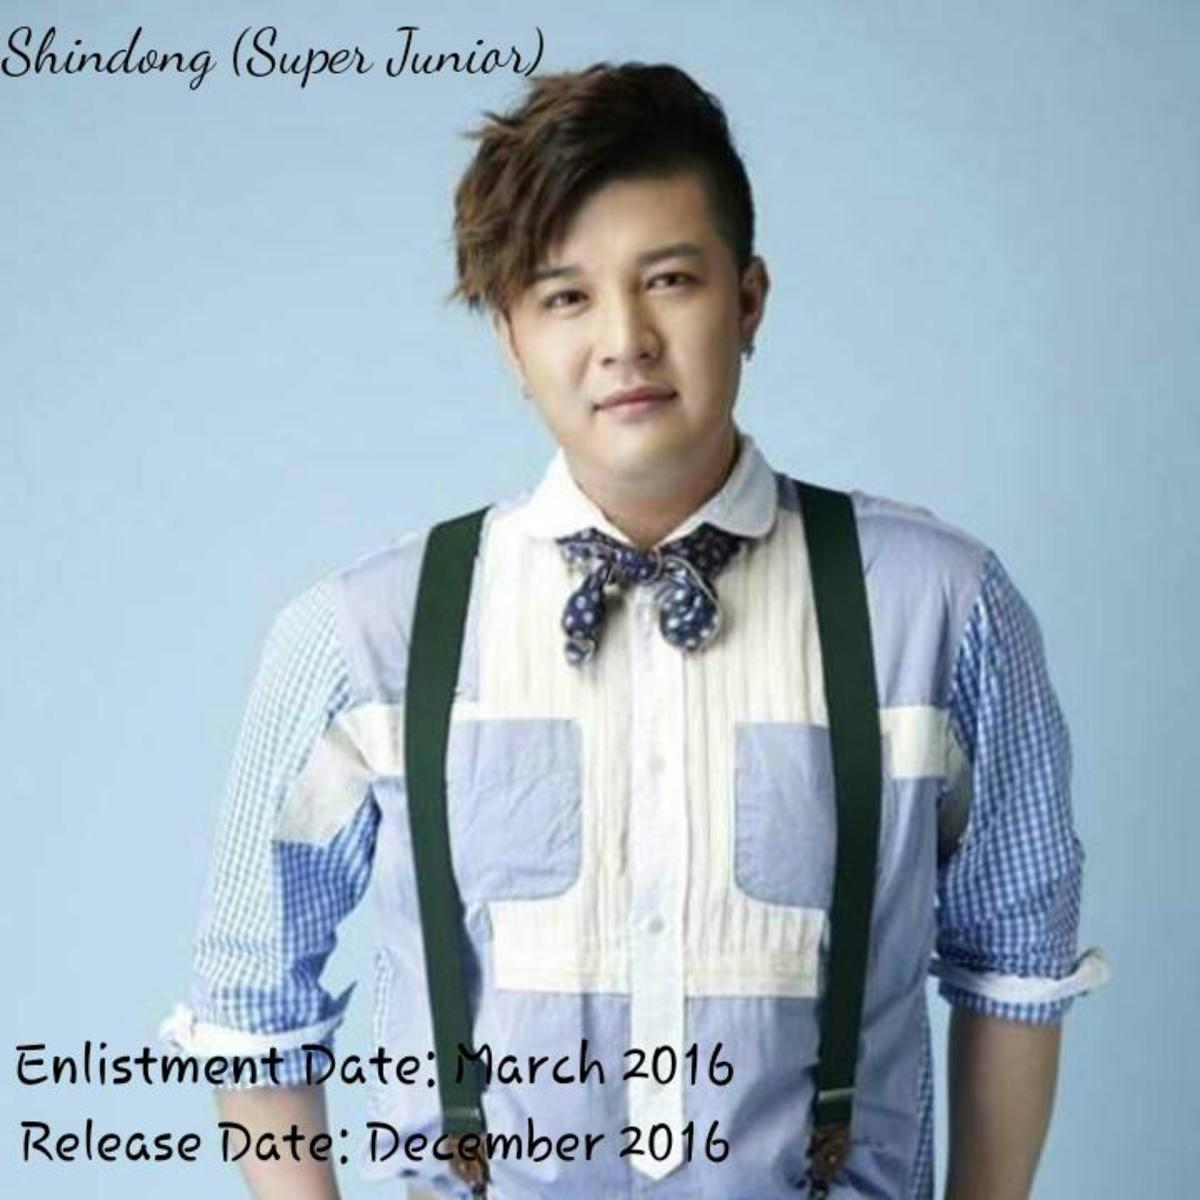 Shindong of Super Junior